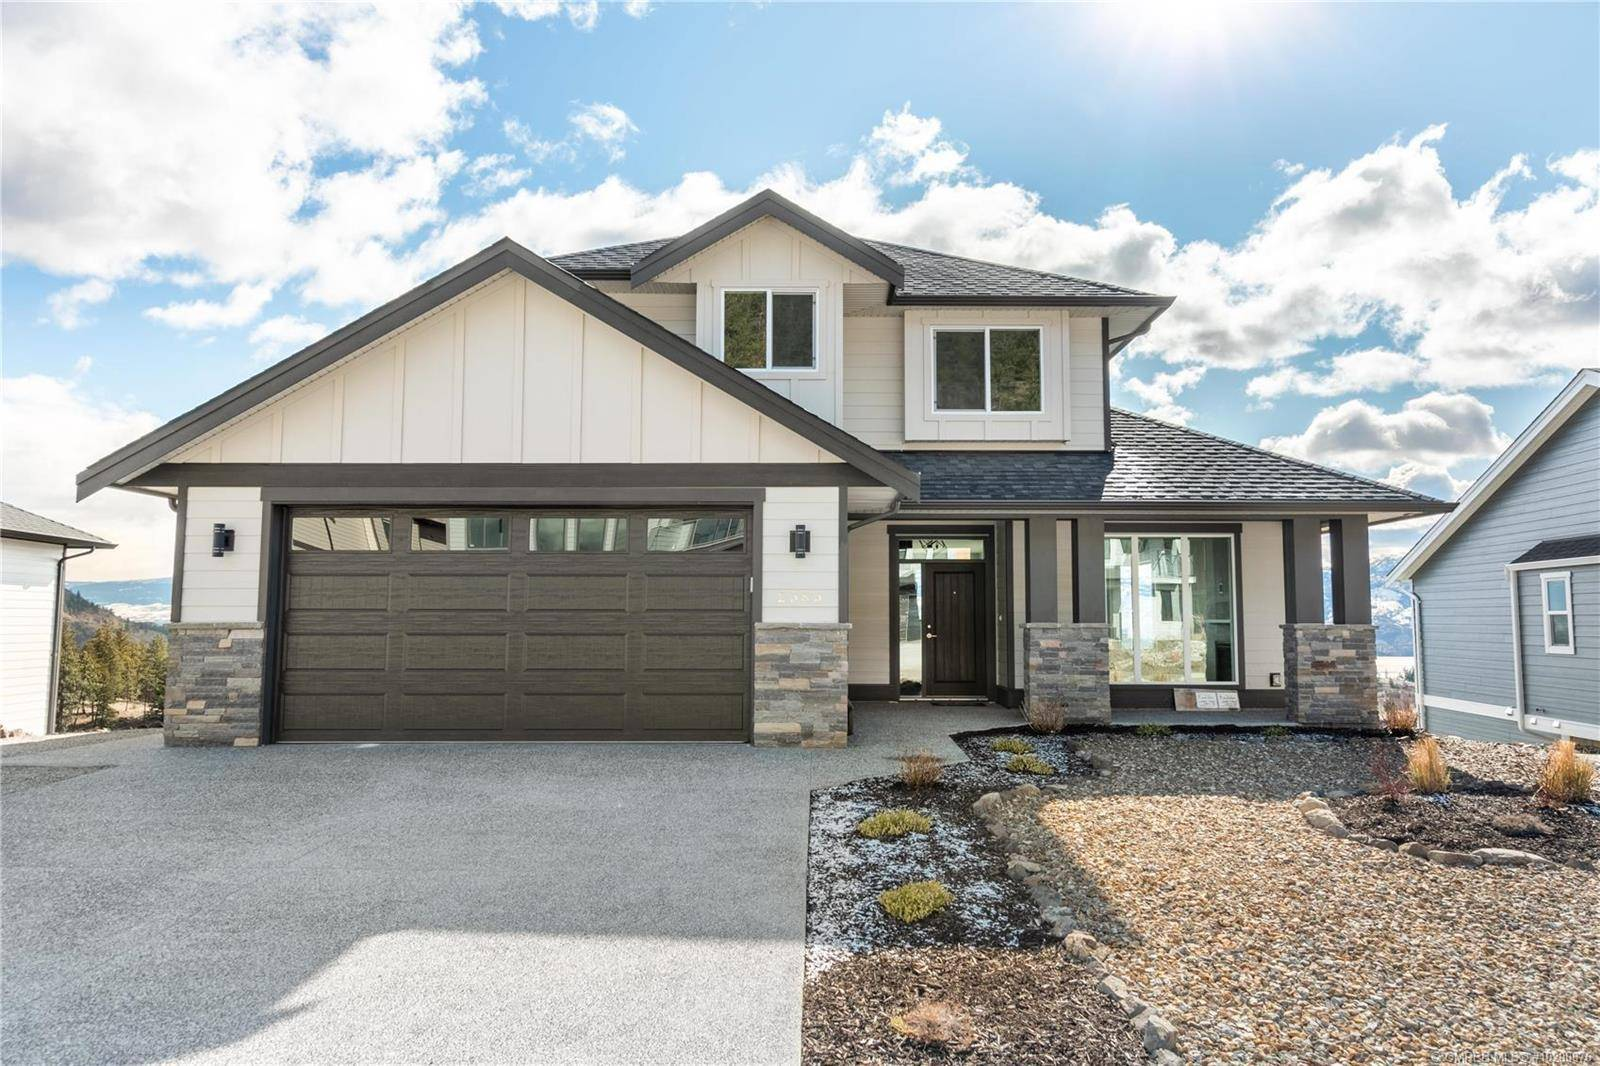 House for sale at 2585 Crown Crest Dr West Kelowna British Columbia - MLS: 10200876